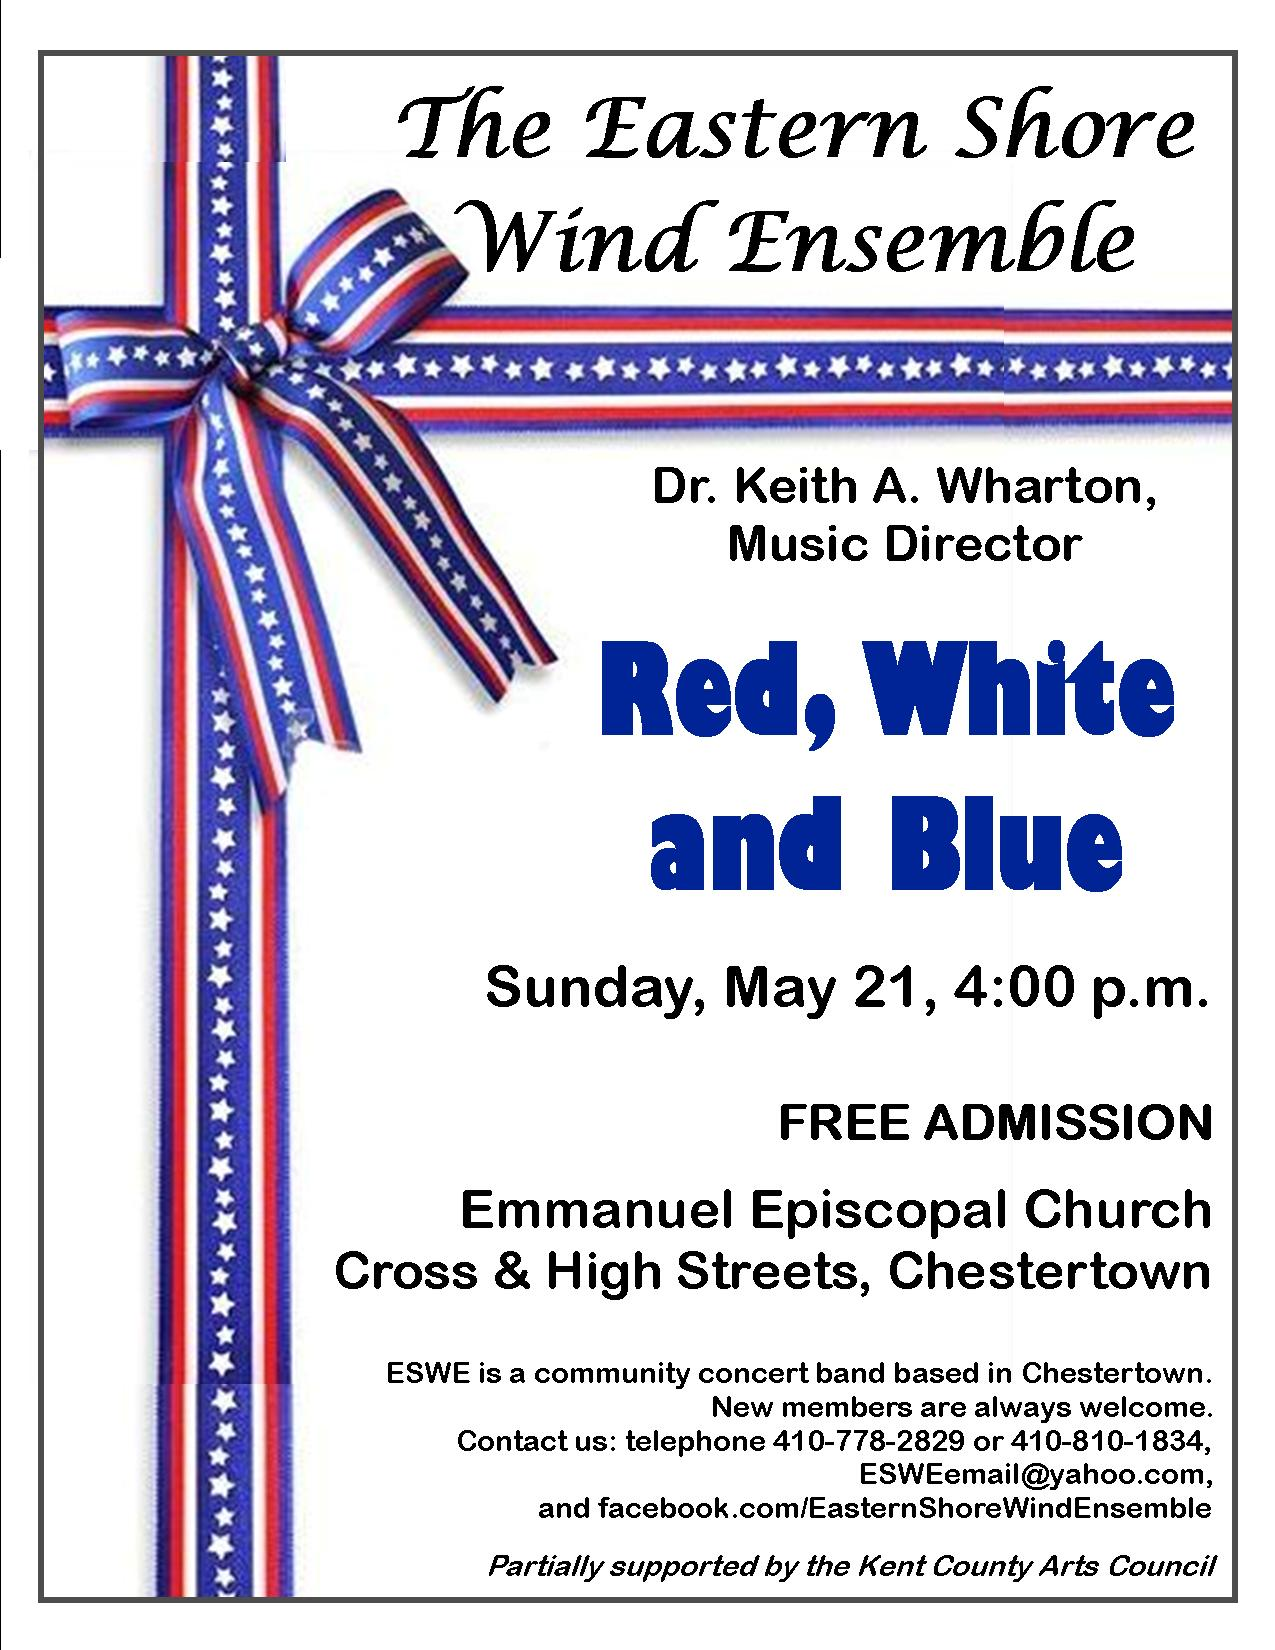 Red, White, & Blue: Free Band Concert by the Eastern Shore Wind Ensemble